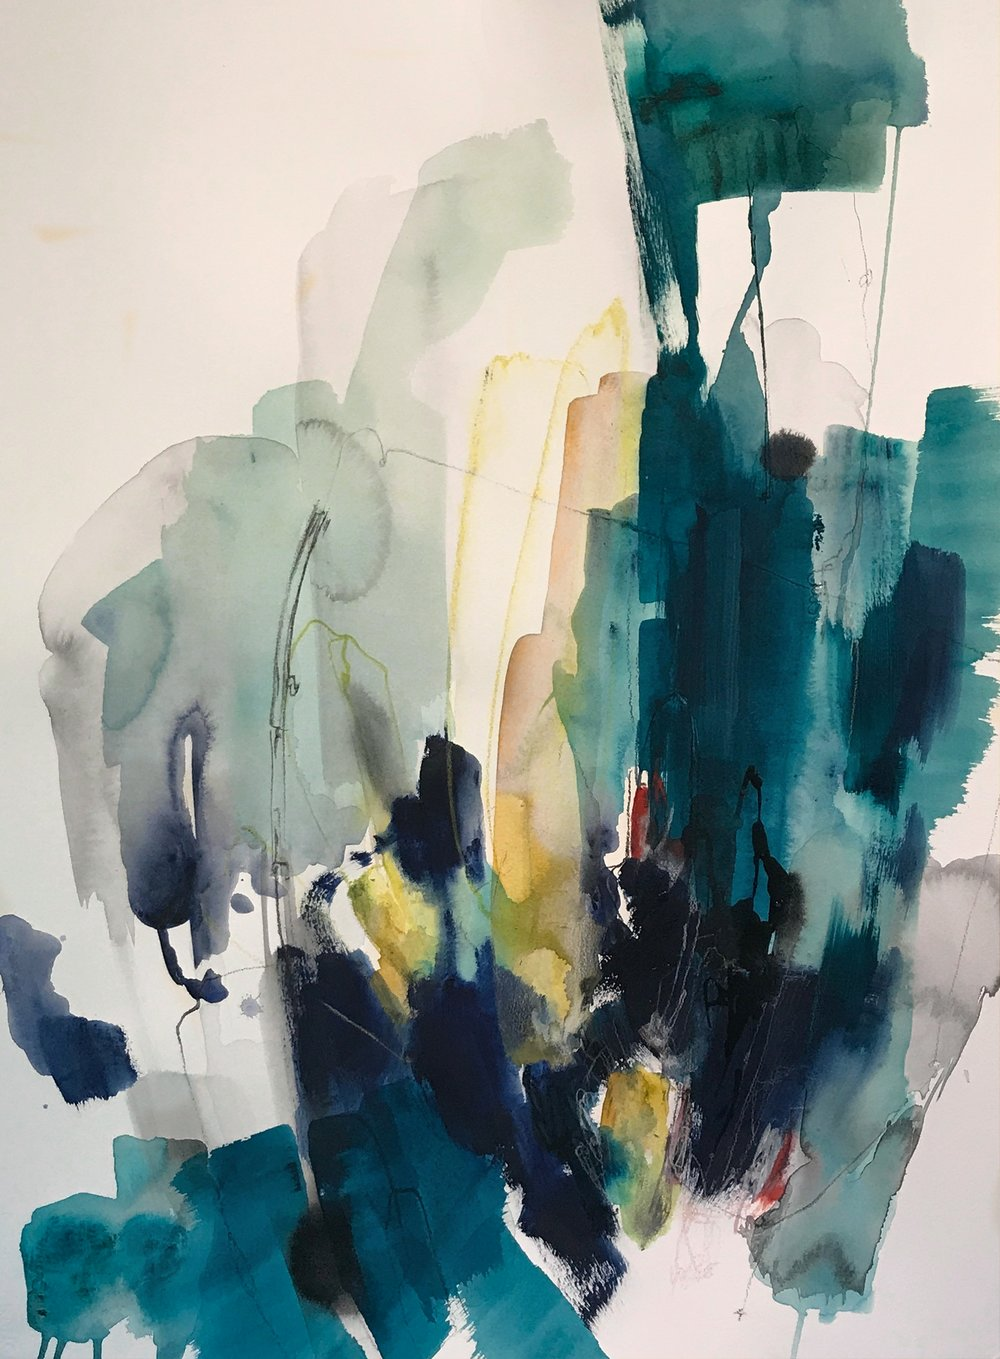 TENDER #1 22 in. x 30 in. acrylic, pencil on paper